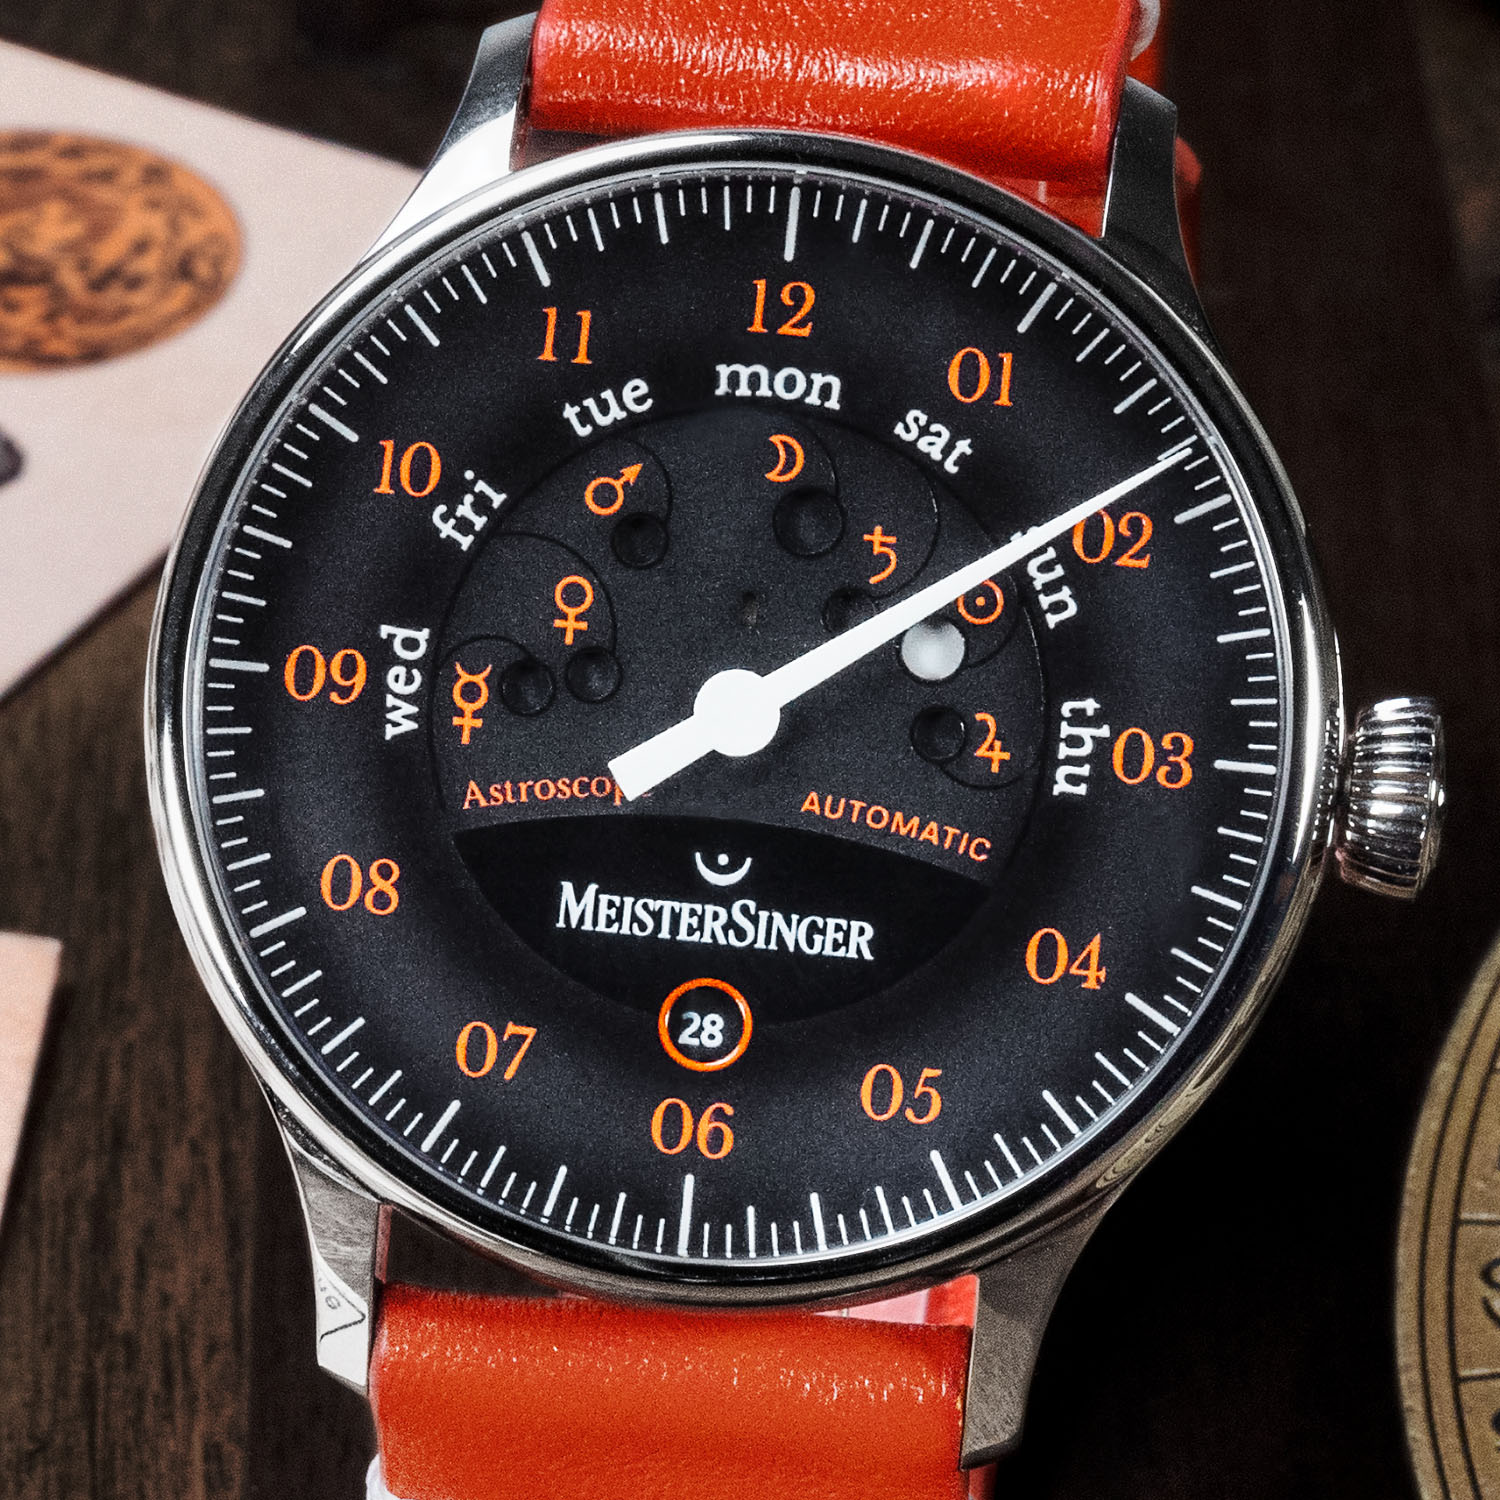 MeisterSinger Astroscope Edition 20th Anniversary